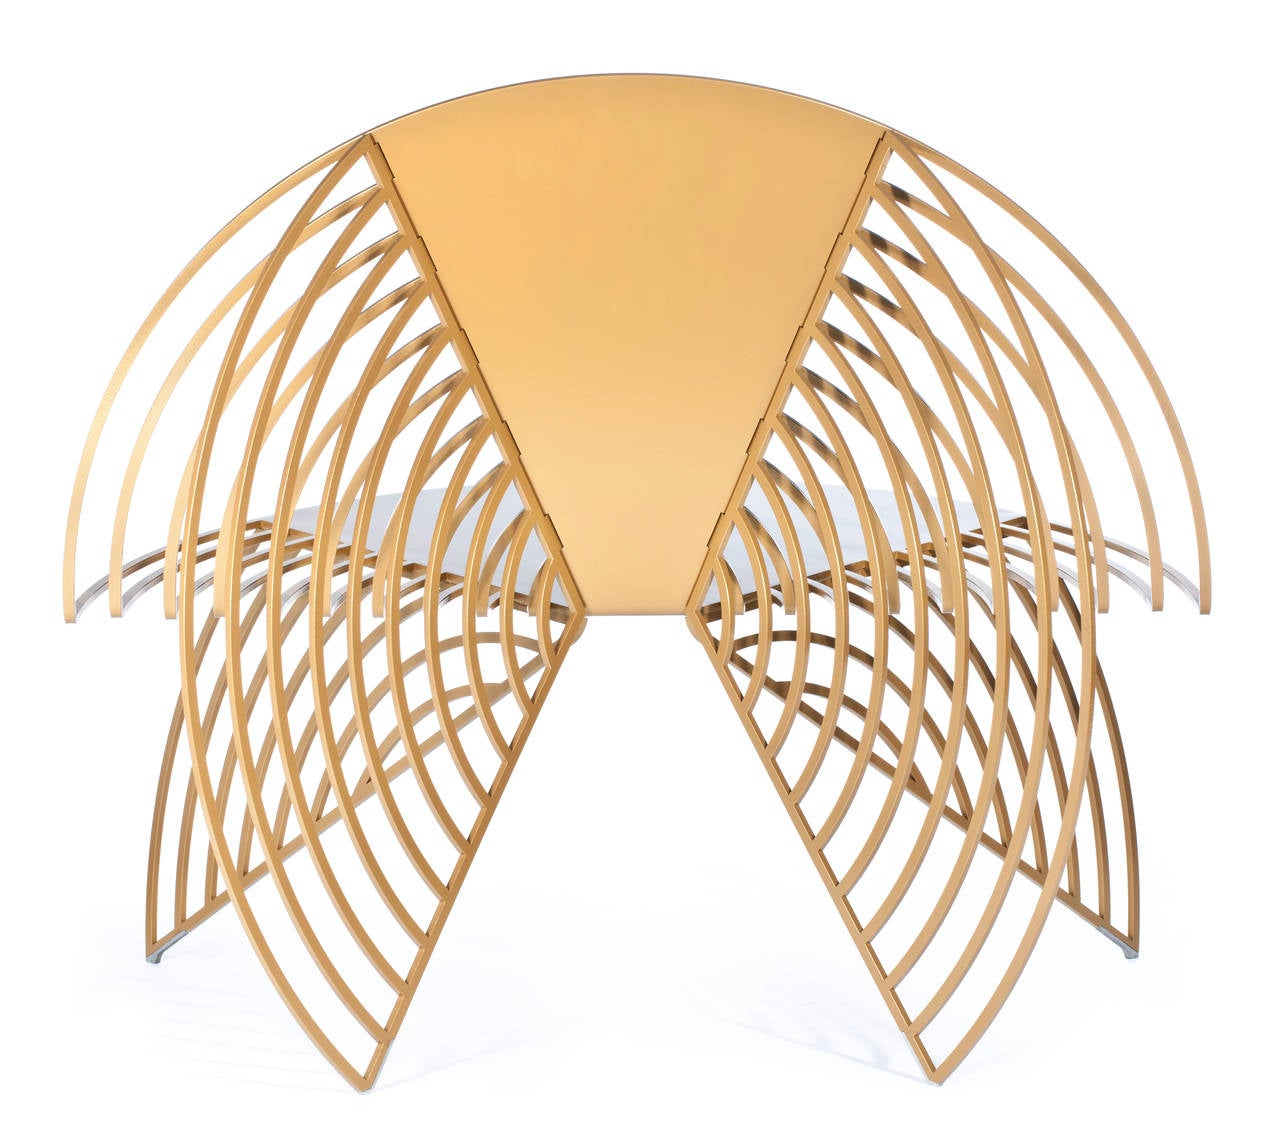 steel chair gold black metal chaise lounge golden wings of designed by laurie beckerman in 2012 american for sale